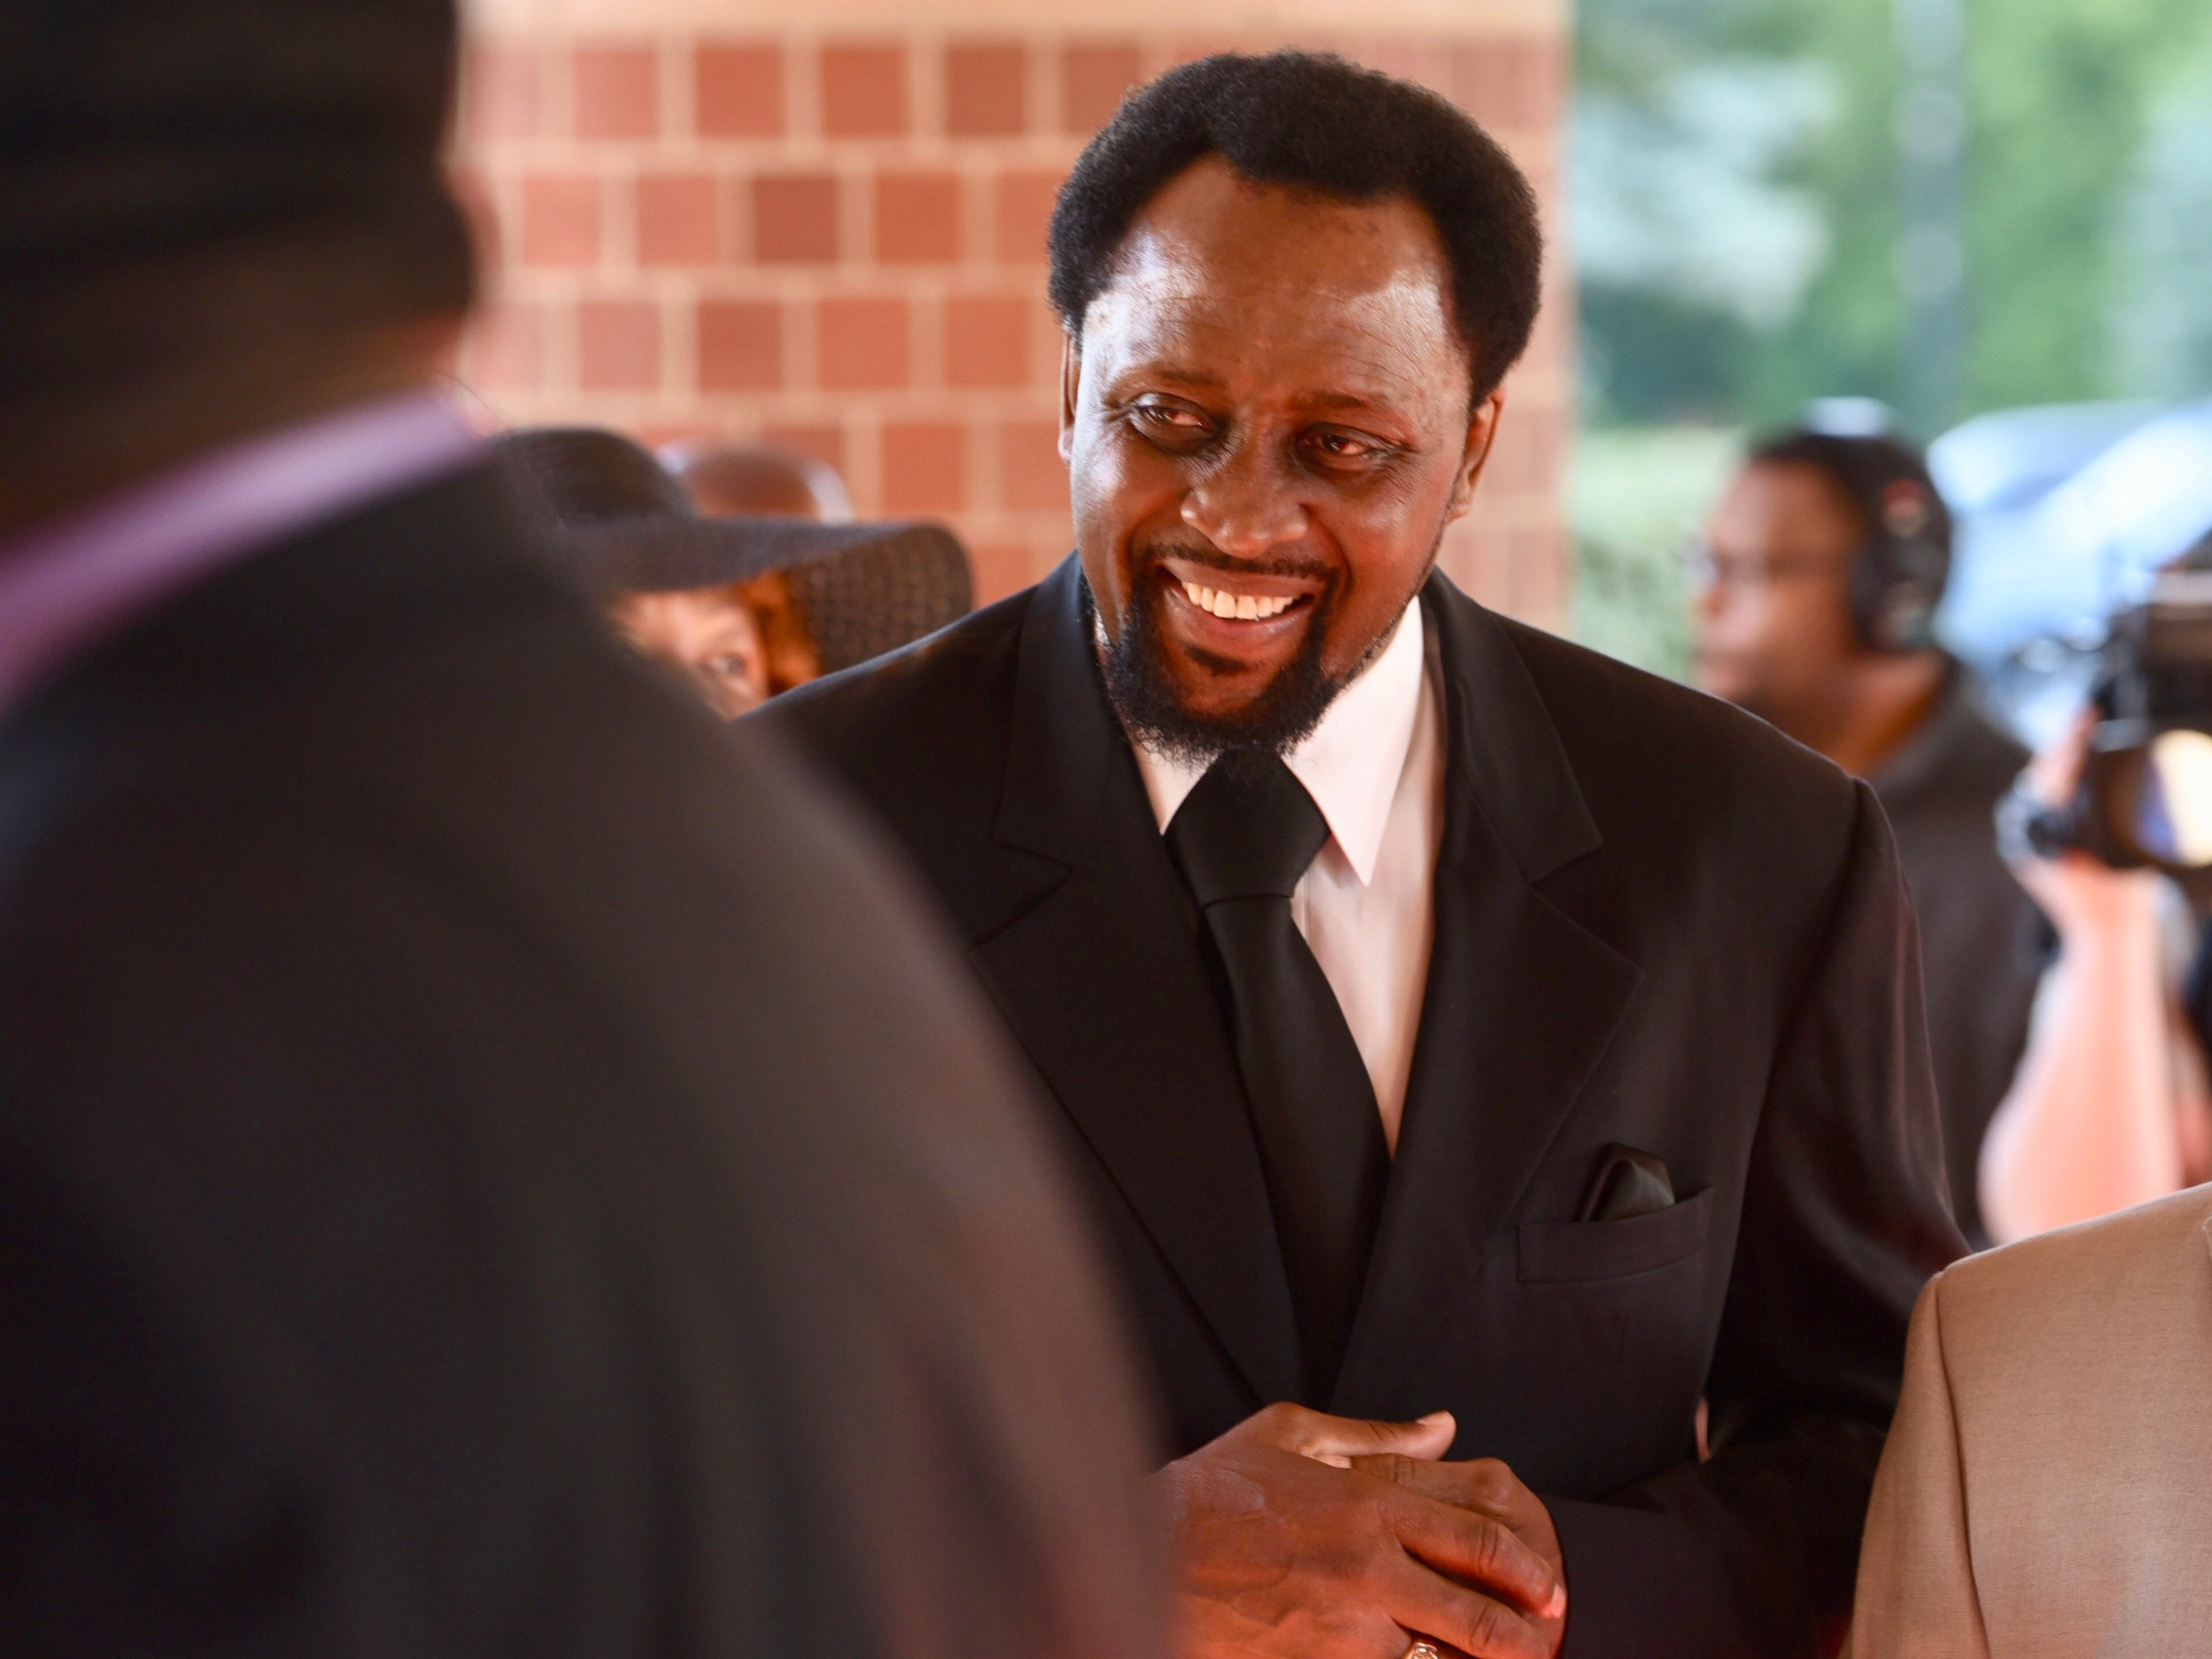 Boxing great Thomas Hearns arrives at the memorial service for Aretha Franklin.